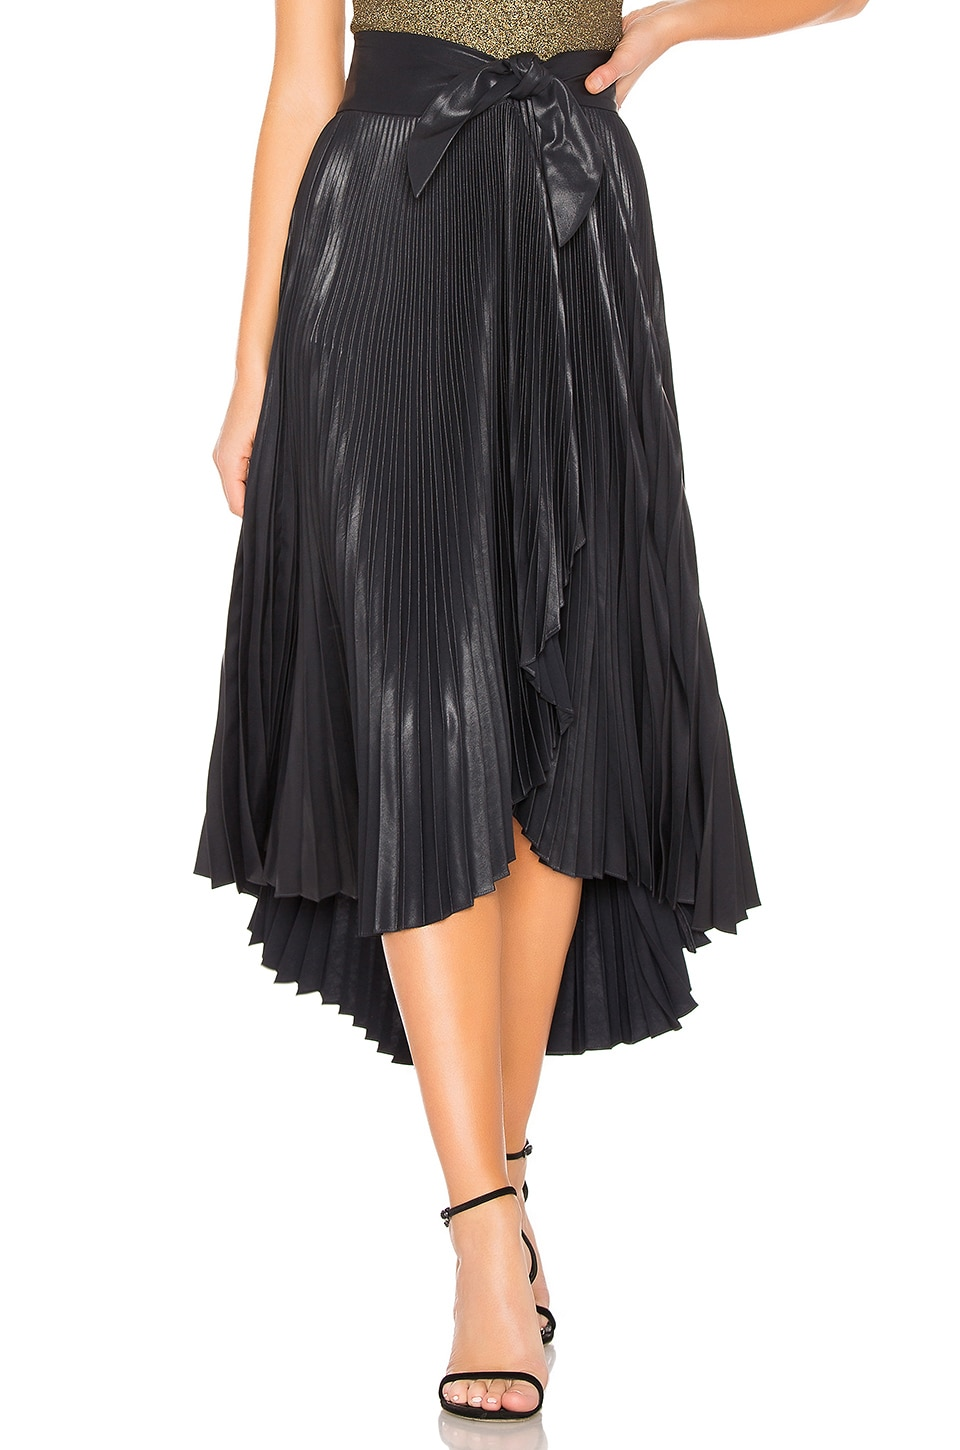 A.L.C. Eleanor Leather Skirt in Midnight